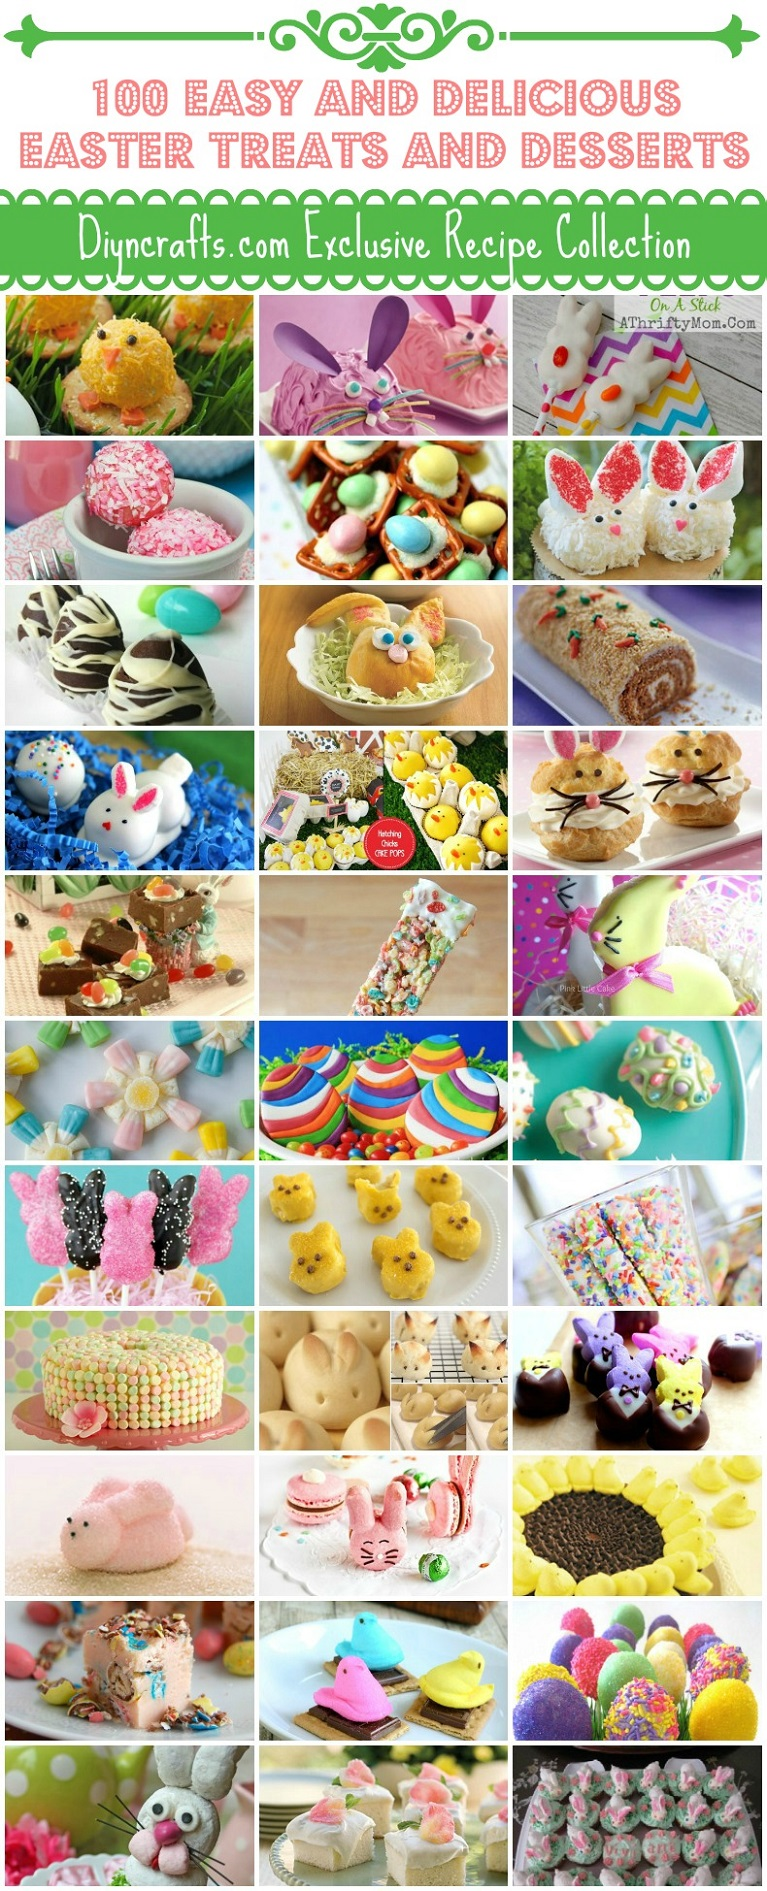 100 Easy And Delicious Easter Treats And Desserts Diy Crafts